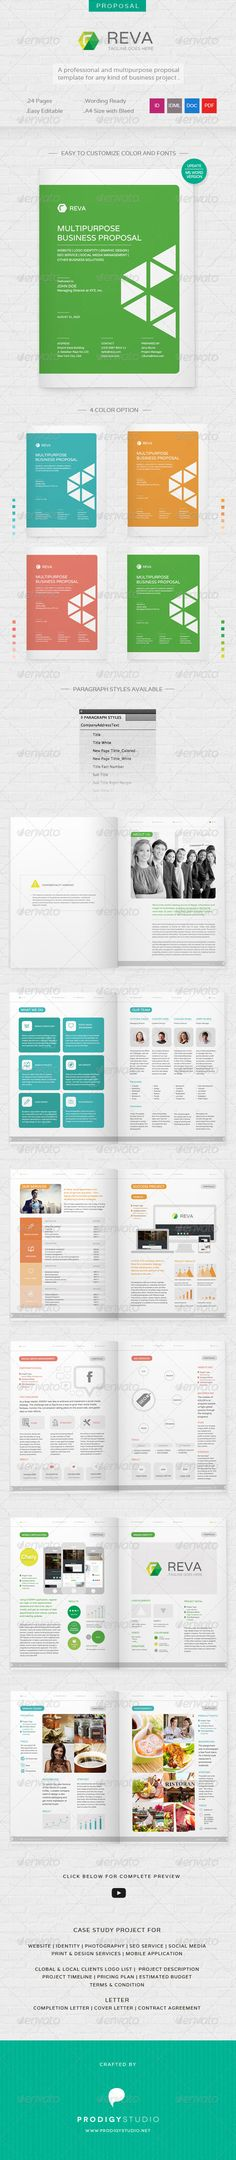 Dsign Questionnaire for Web Design - Proposal Cleanses, Template - business proposals templates